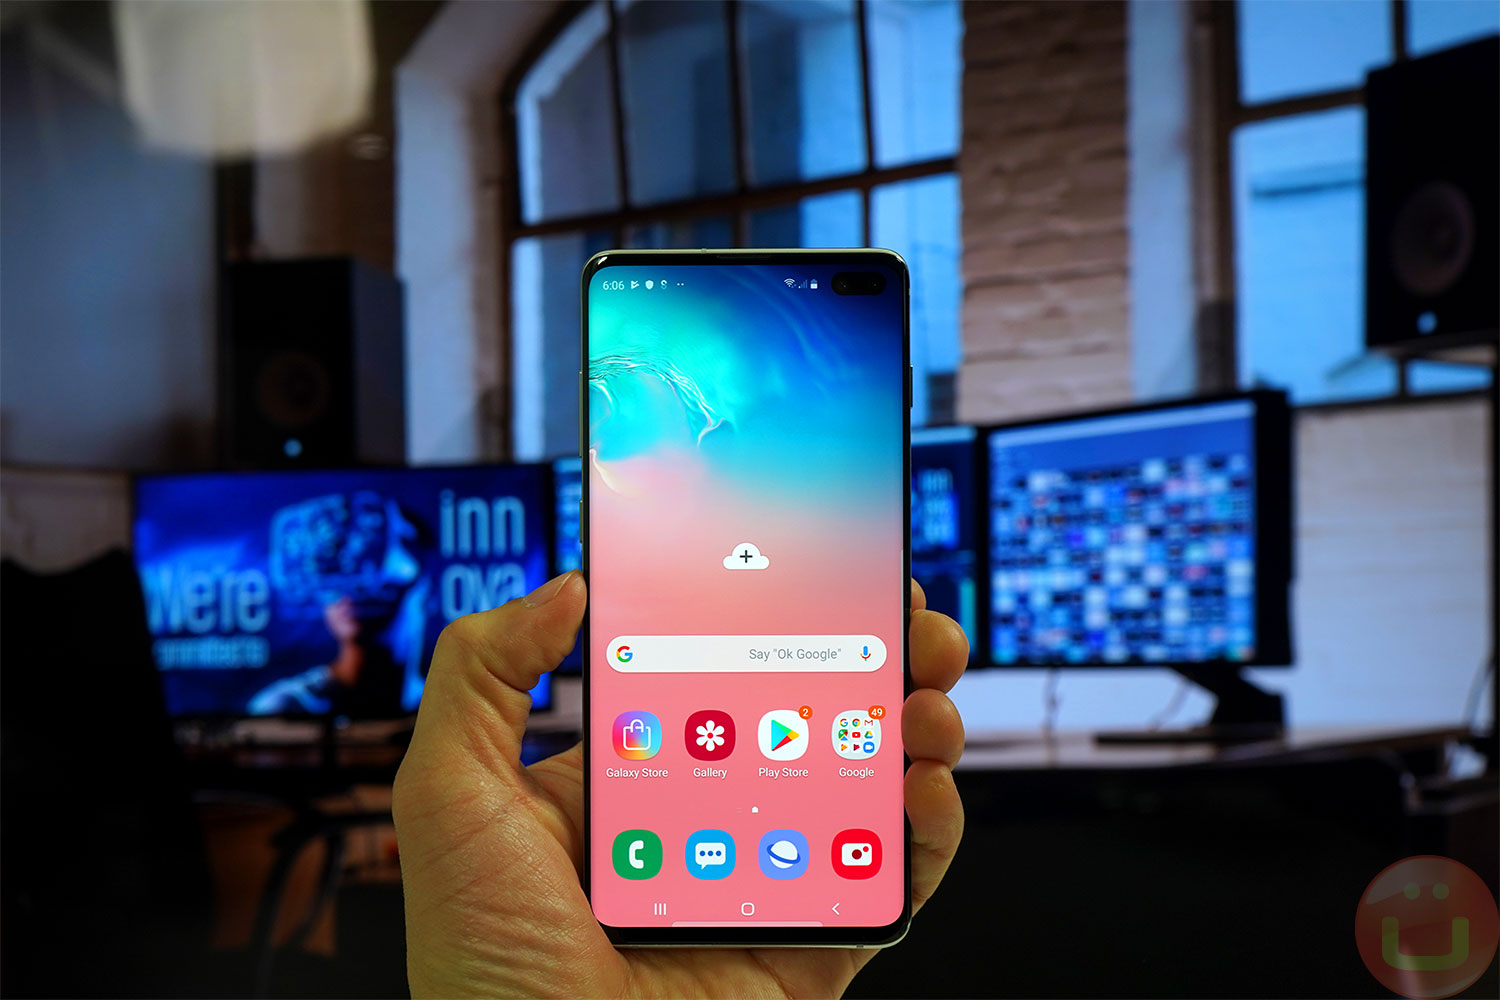 Samsung Embraces The Galaxy S10 S Punch Hole Display With New Wallpapers Ubergizmo